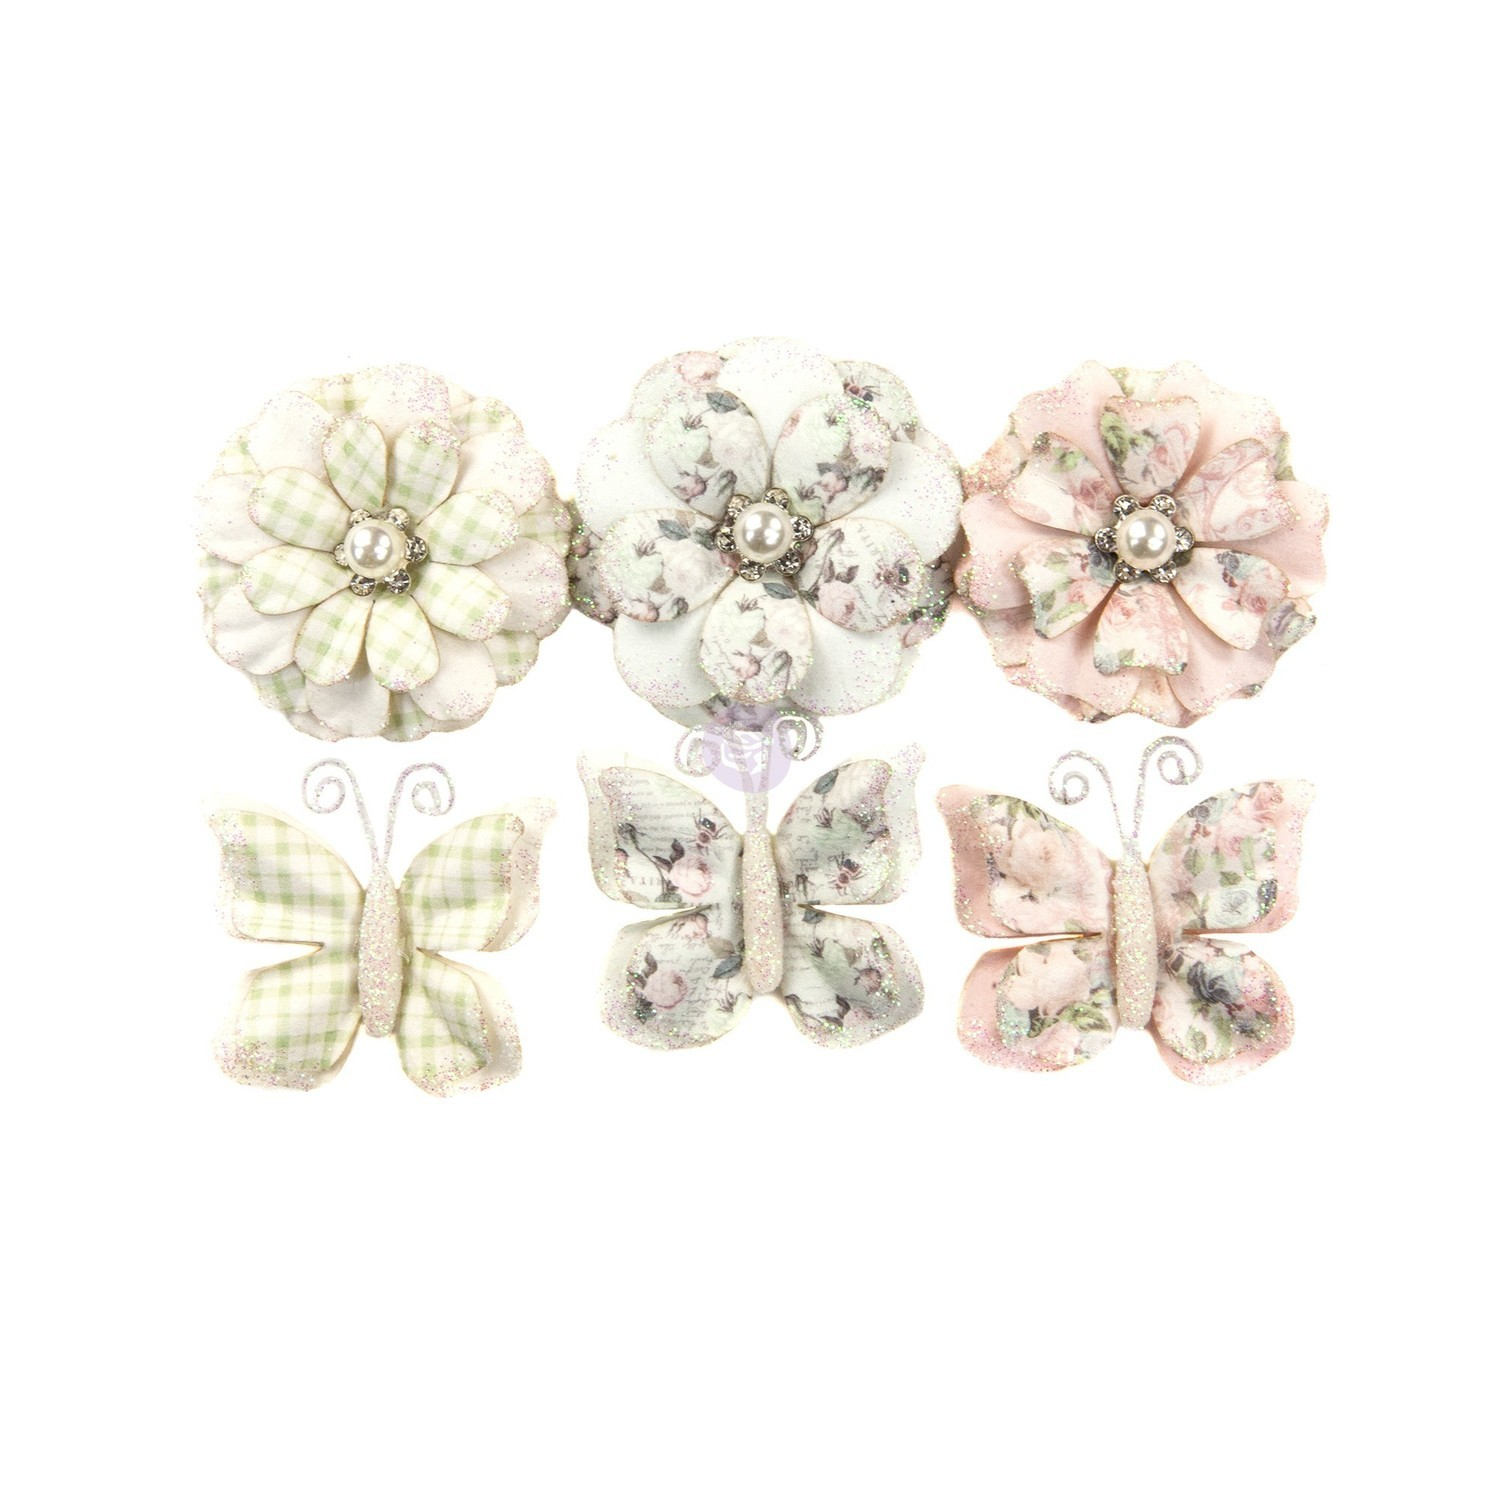 Dainty Dreams - Poetic Rose Flowers - Prima